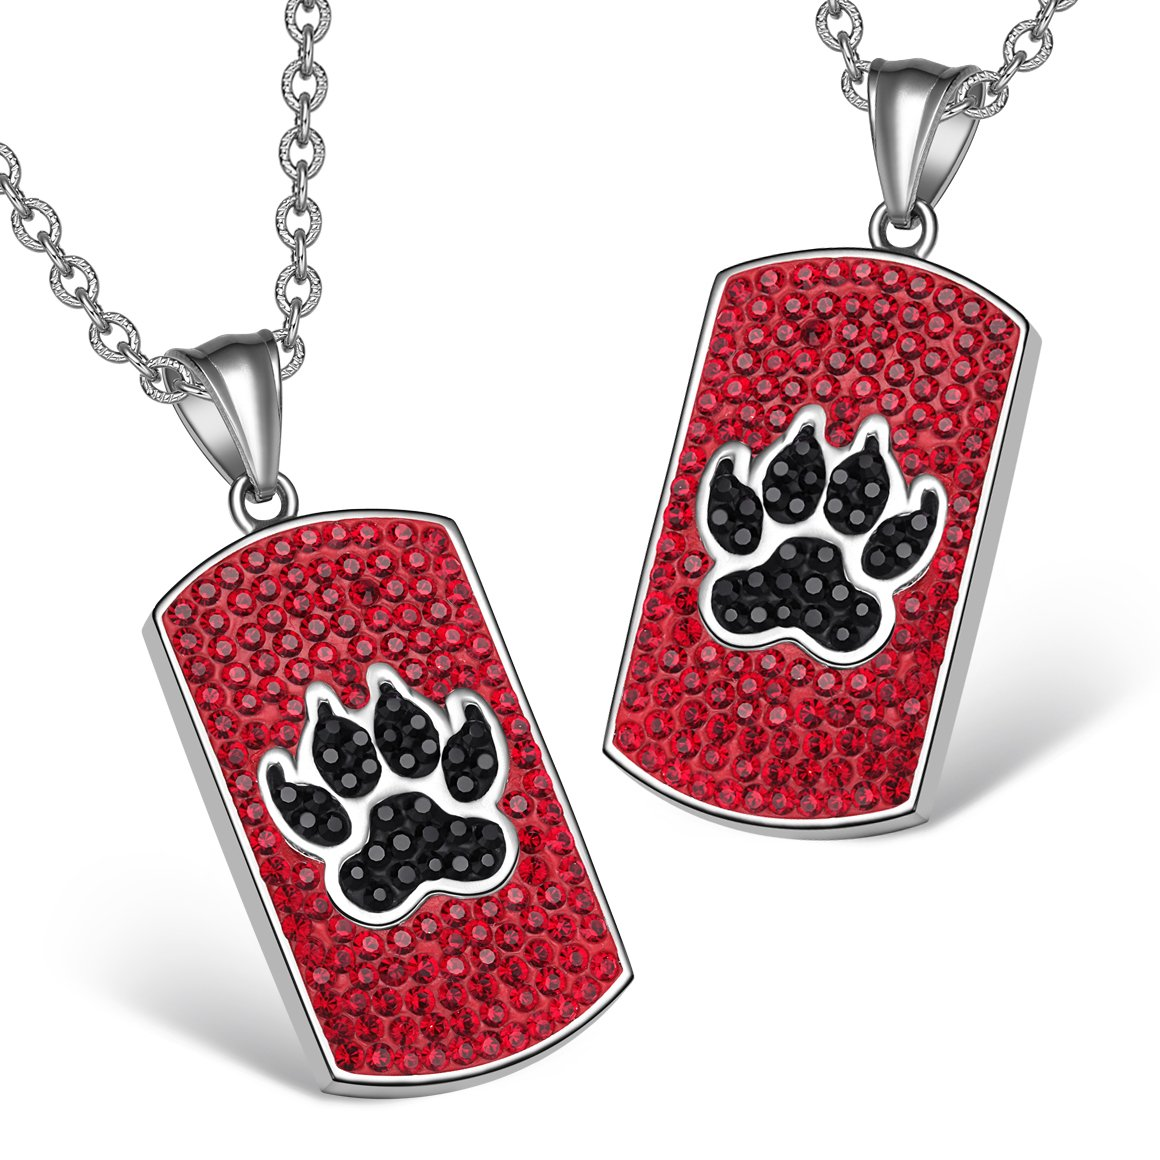 Wolf Paw Austrian Crystal Love Couples or Best Friends Dog Tag Cherry Red Jet Black Charm Necklaces